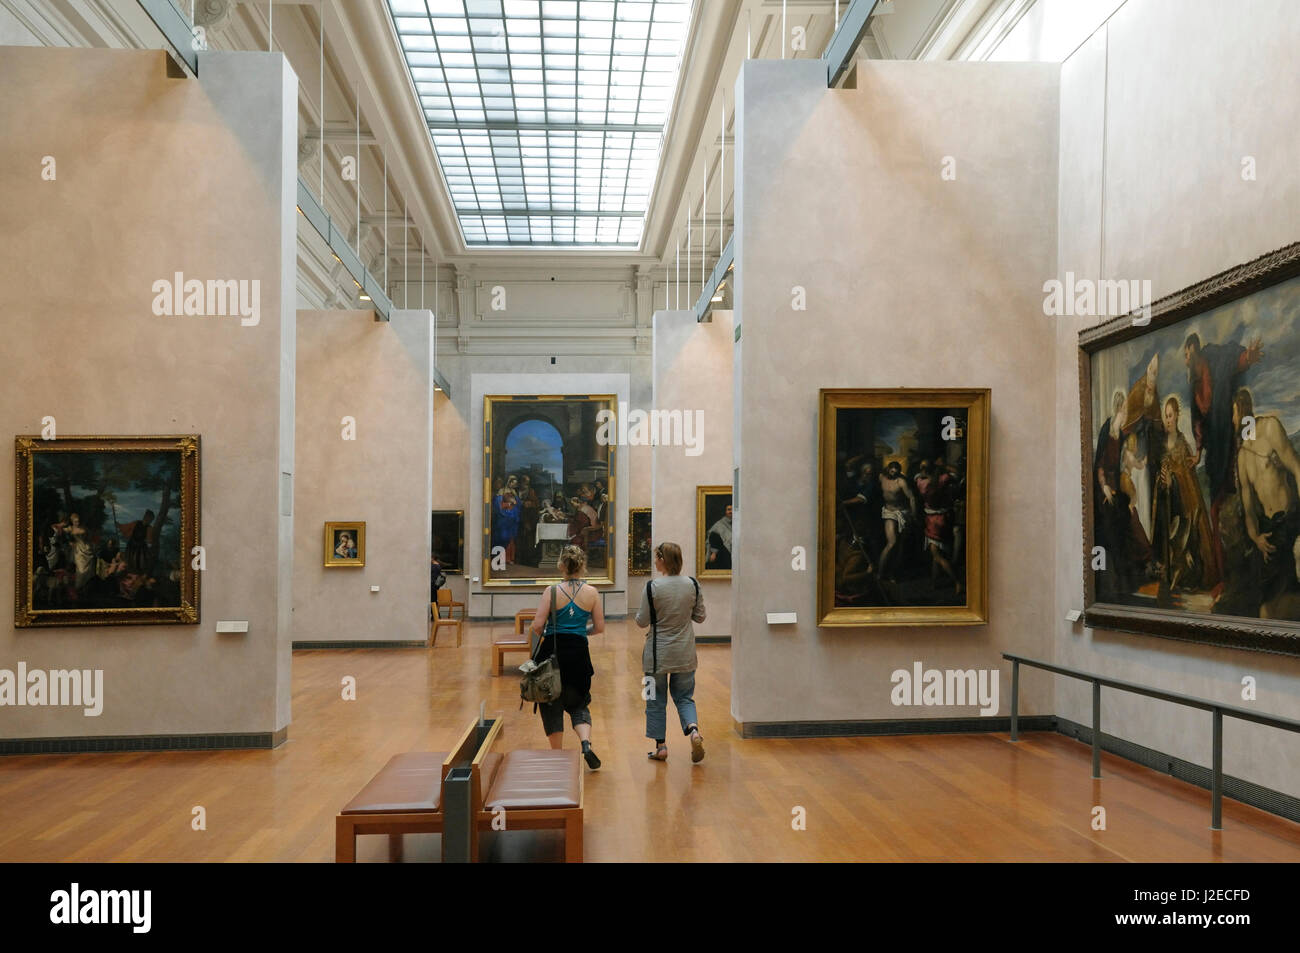 France, Rhone-Alpes, Lyon. Interior of a large paintings gallery, Musee des Beaux Arts Stock Photo